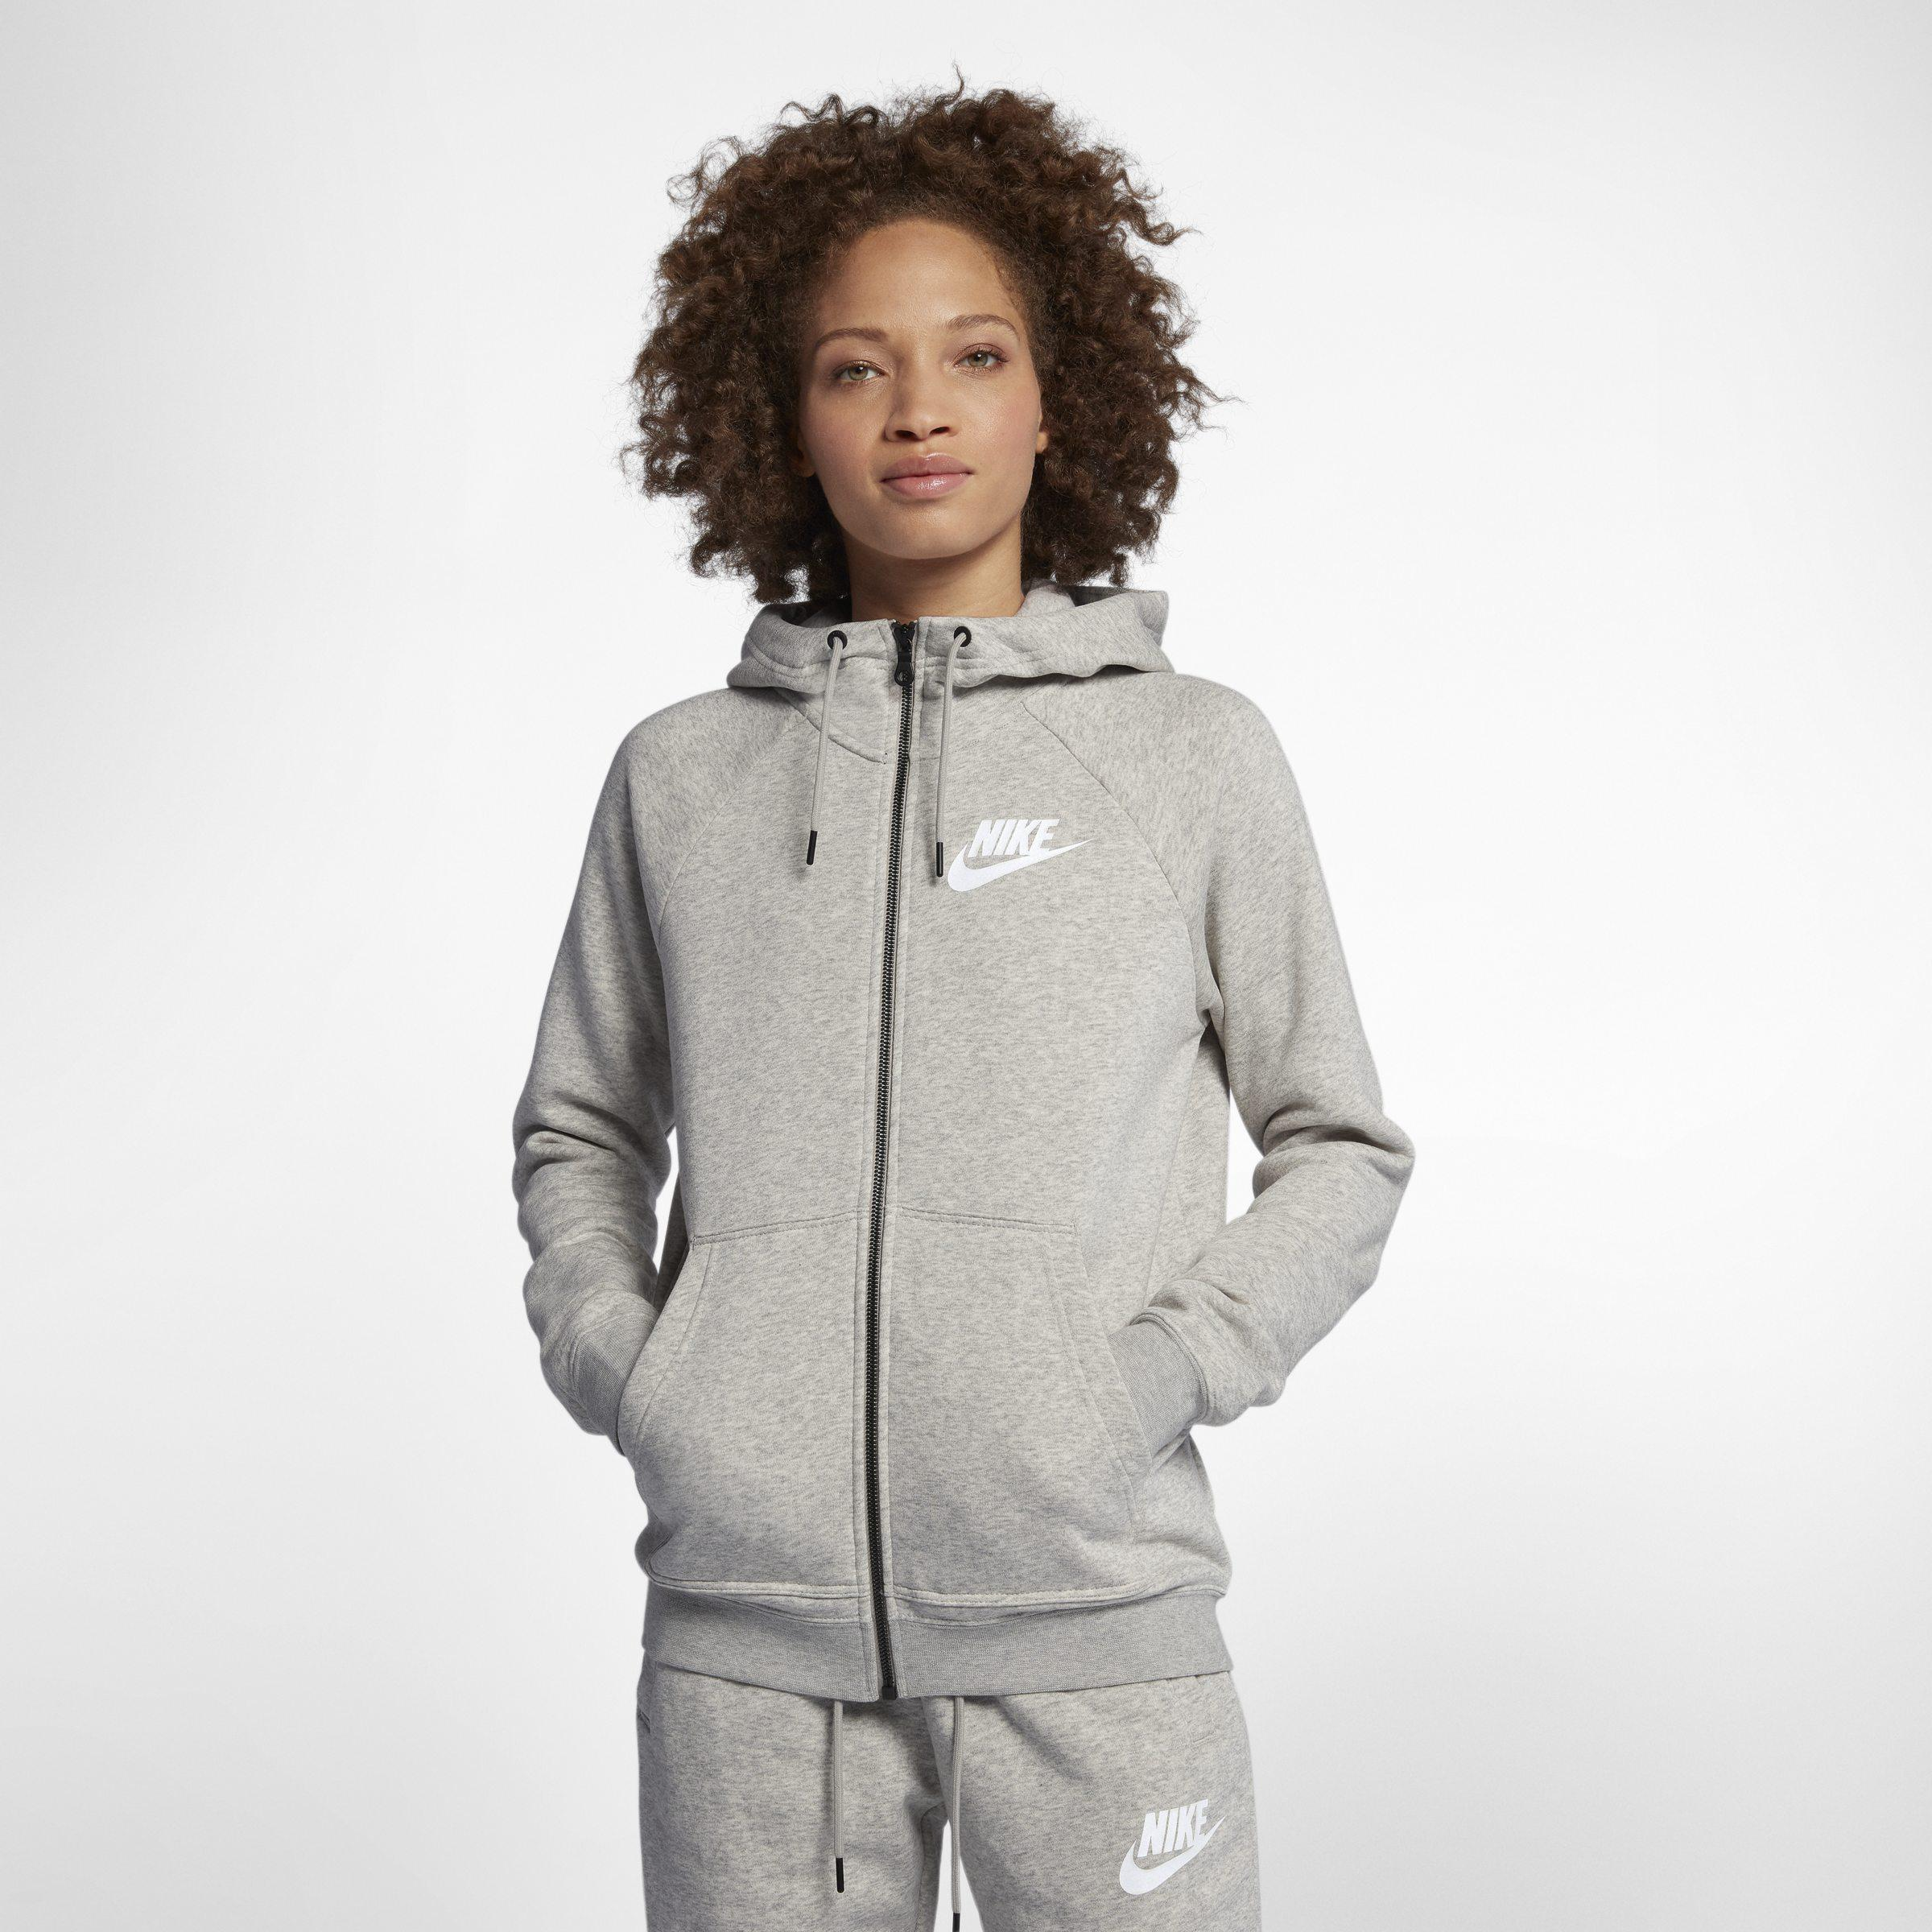 502fb05d54c4 Nike Sportswear Rally Full-zip Hoodie in Gray - Lyst